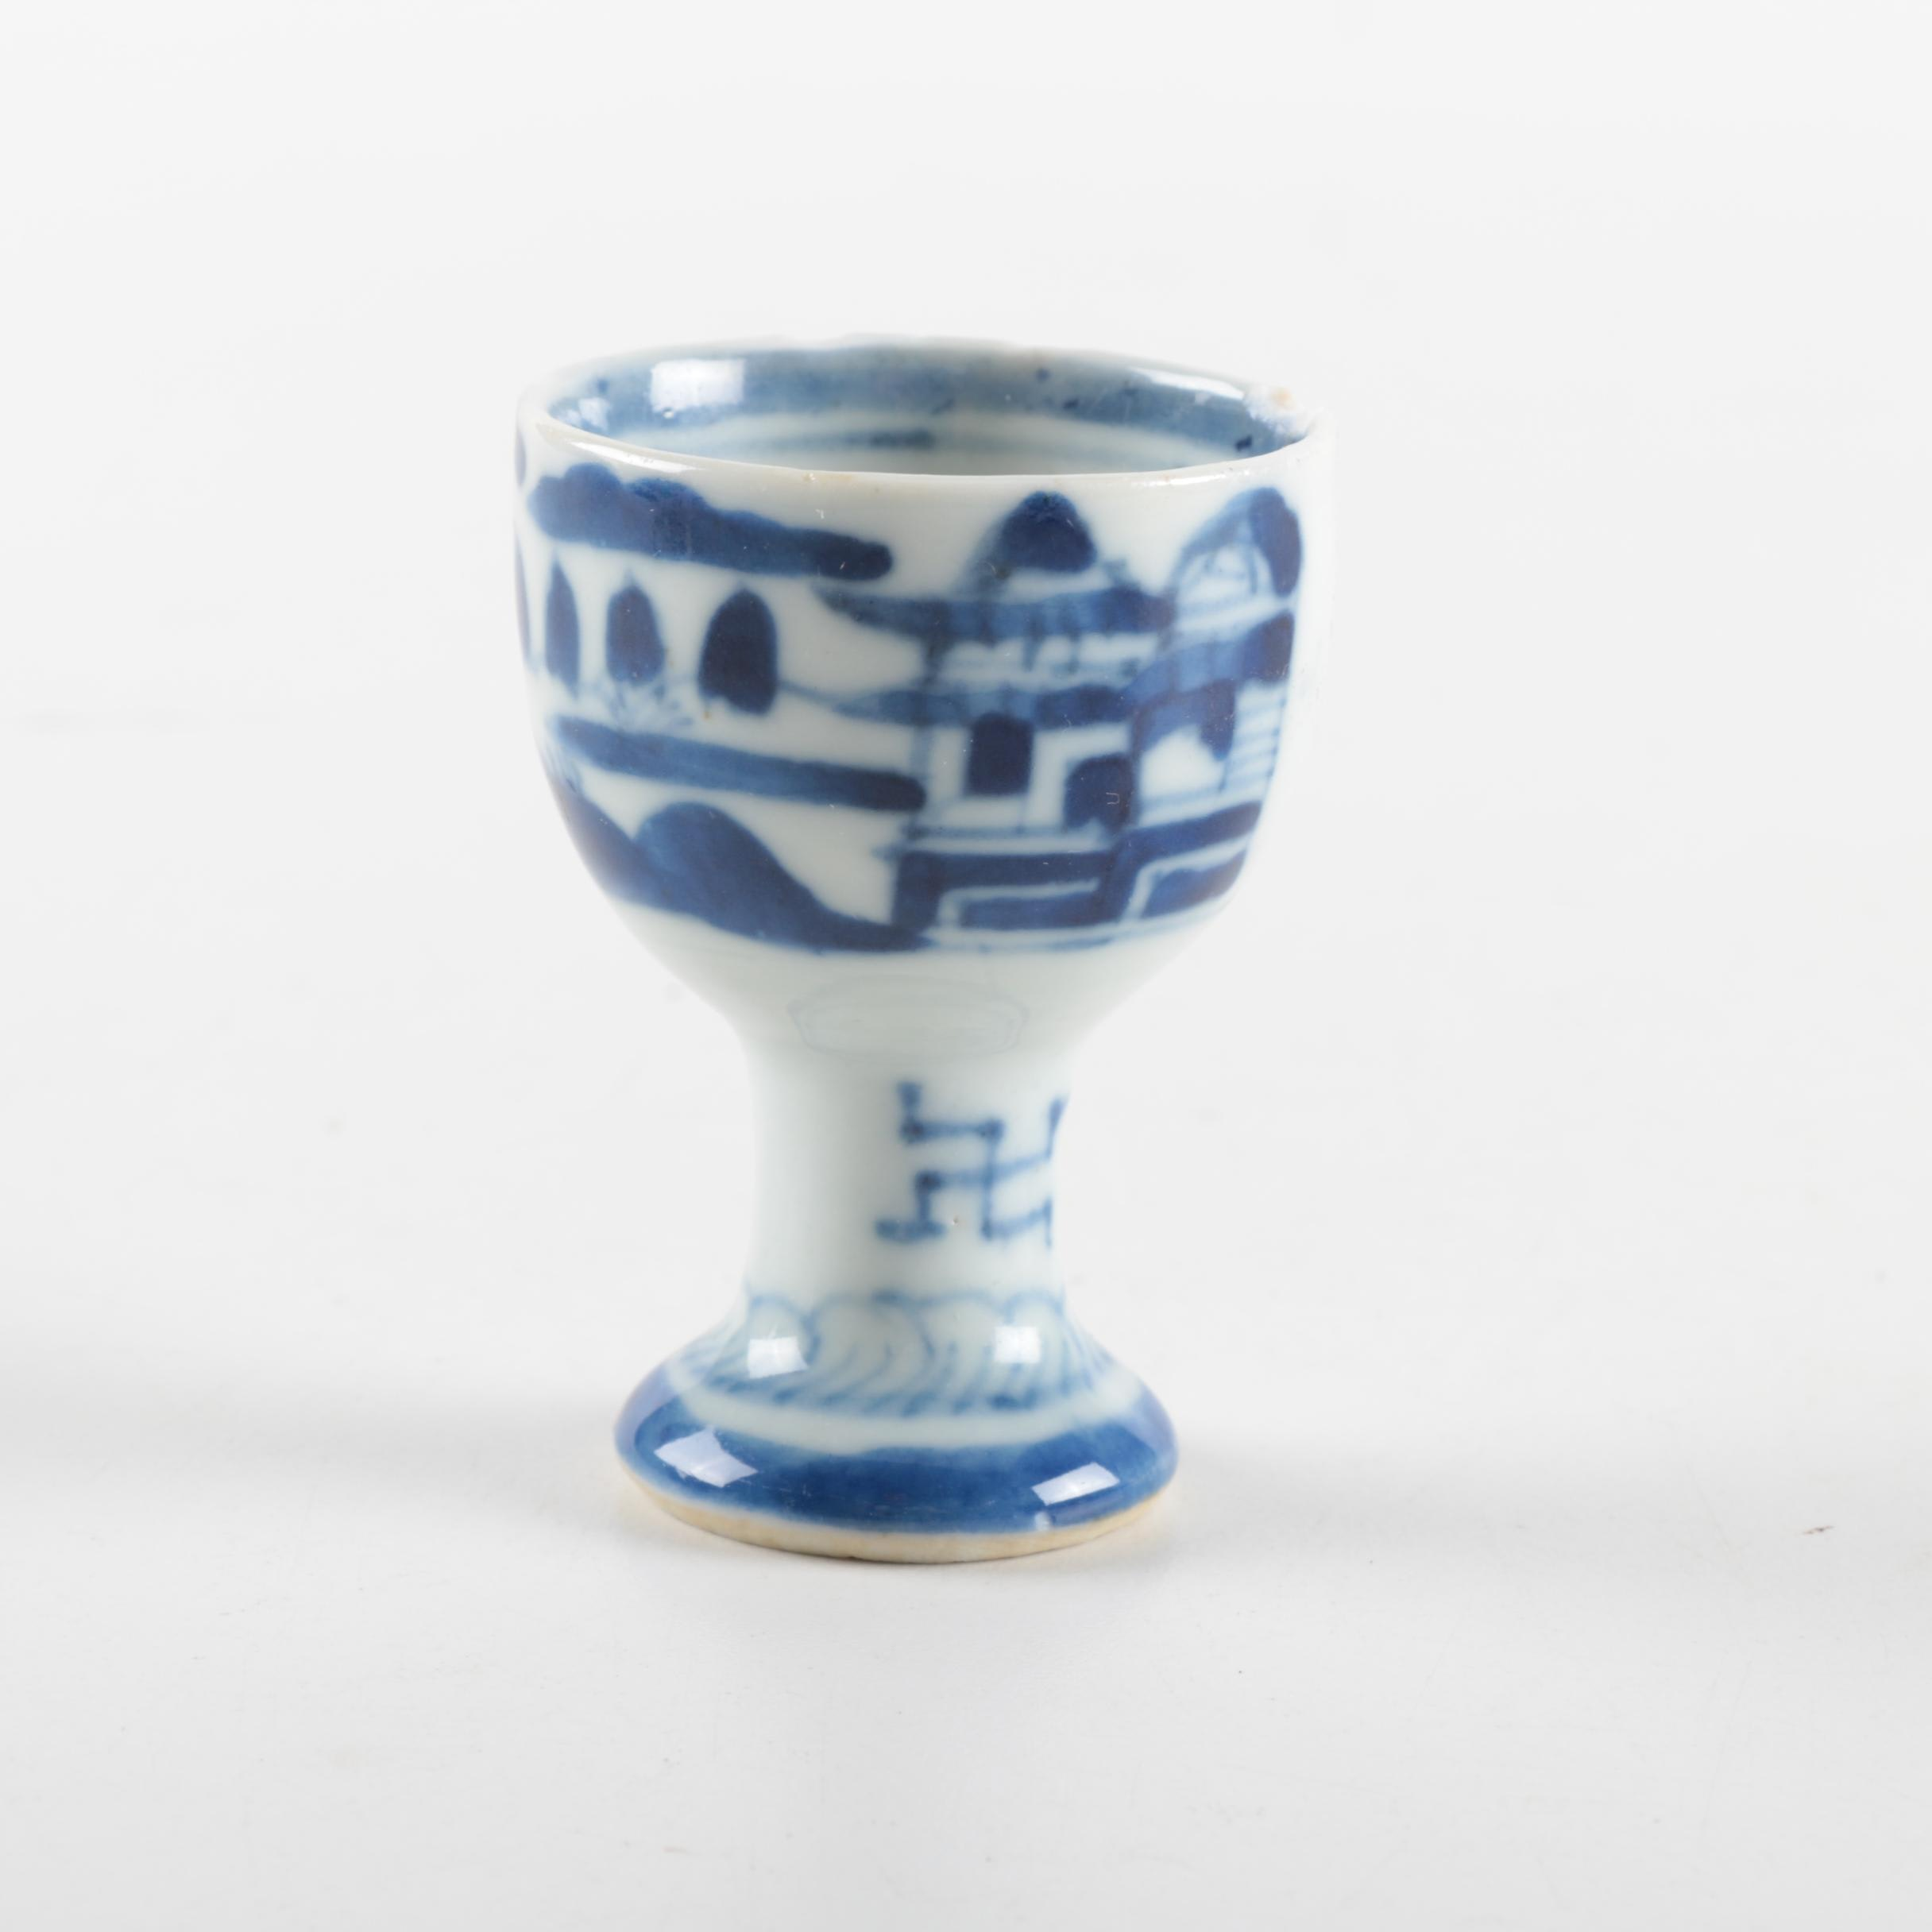 Chinese Ceramic Egg Cup